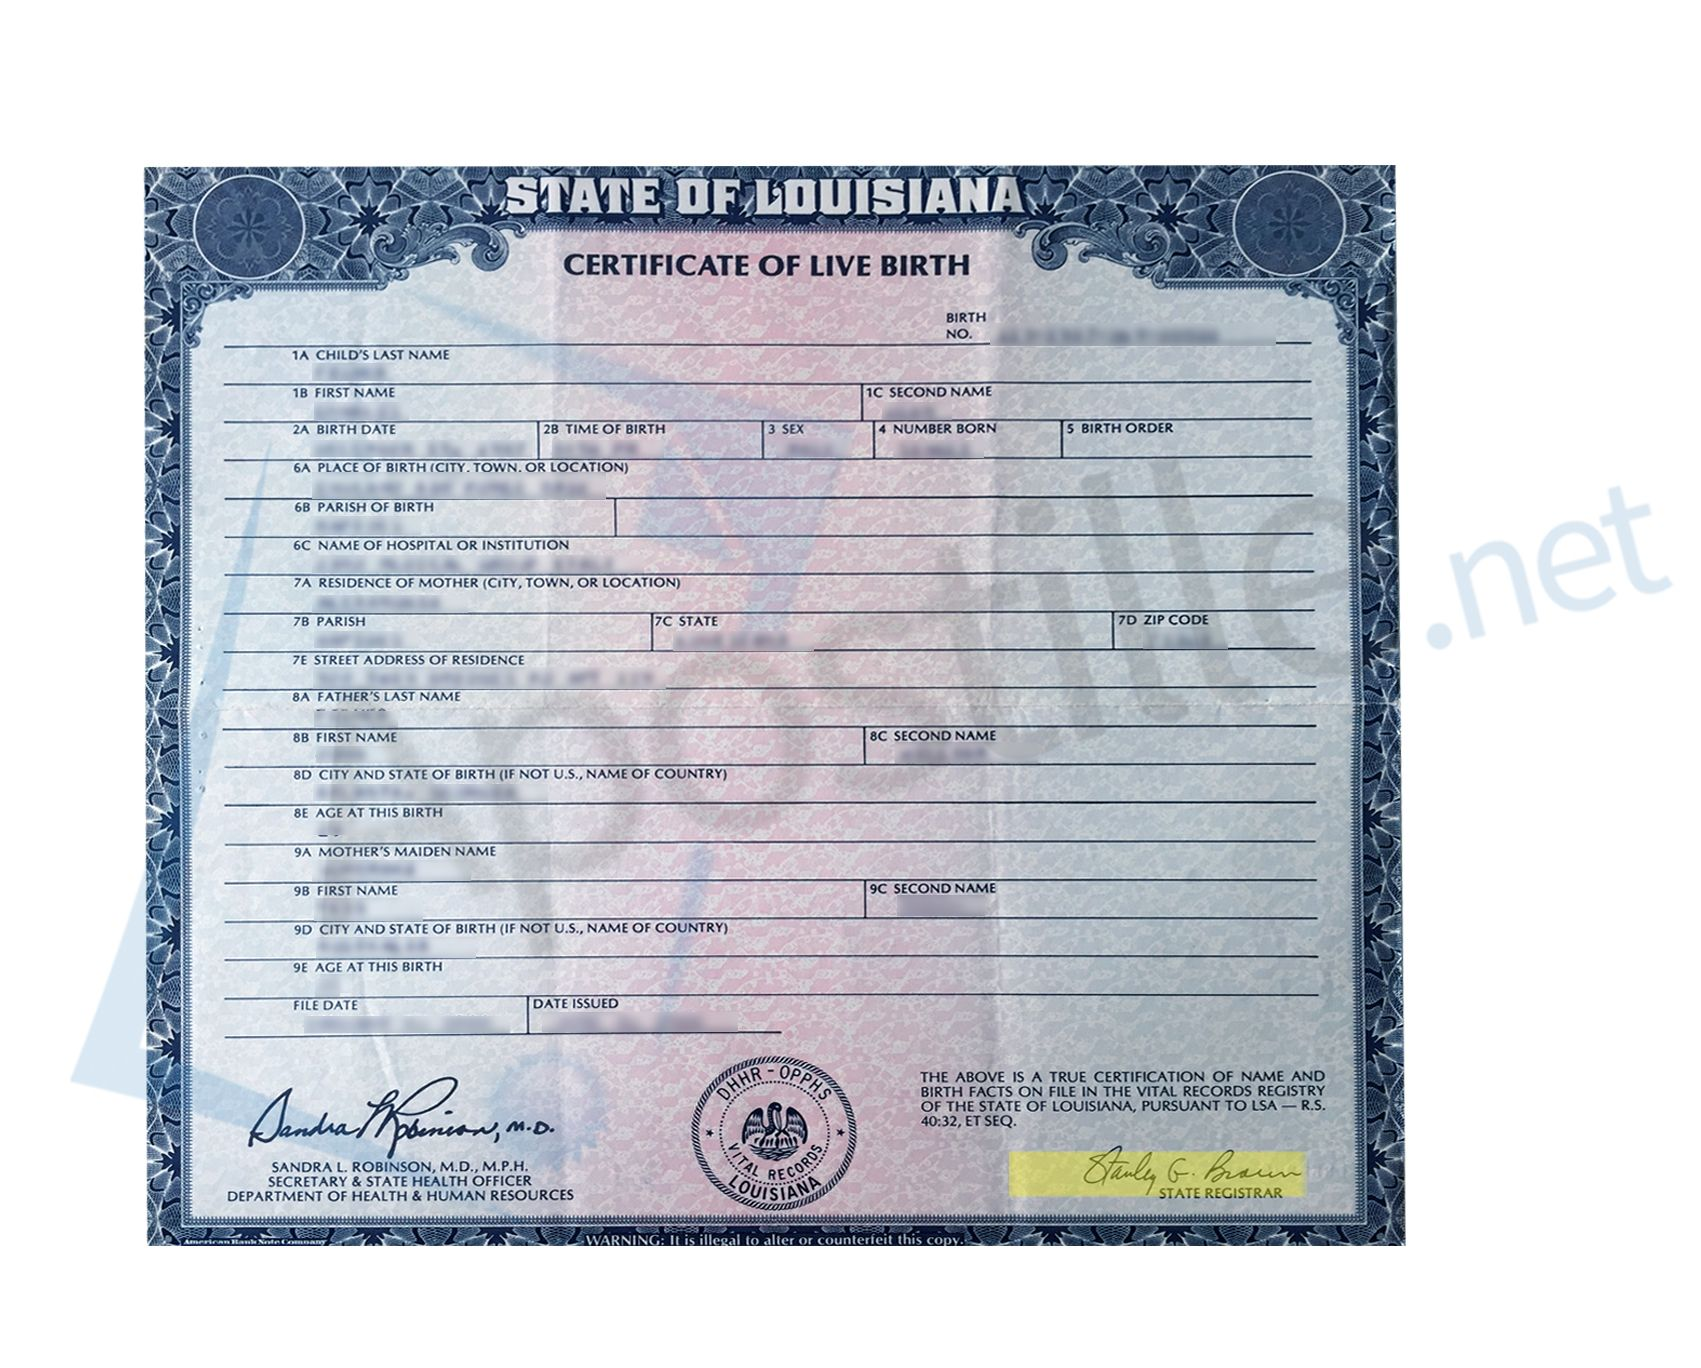 State Of Louisiana Birth Certificate Issued By Stanley G Braun State